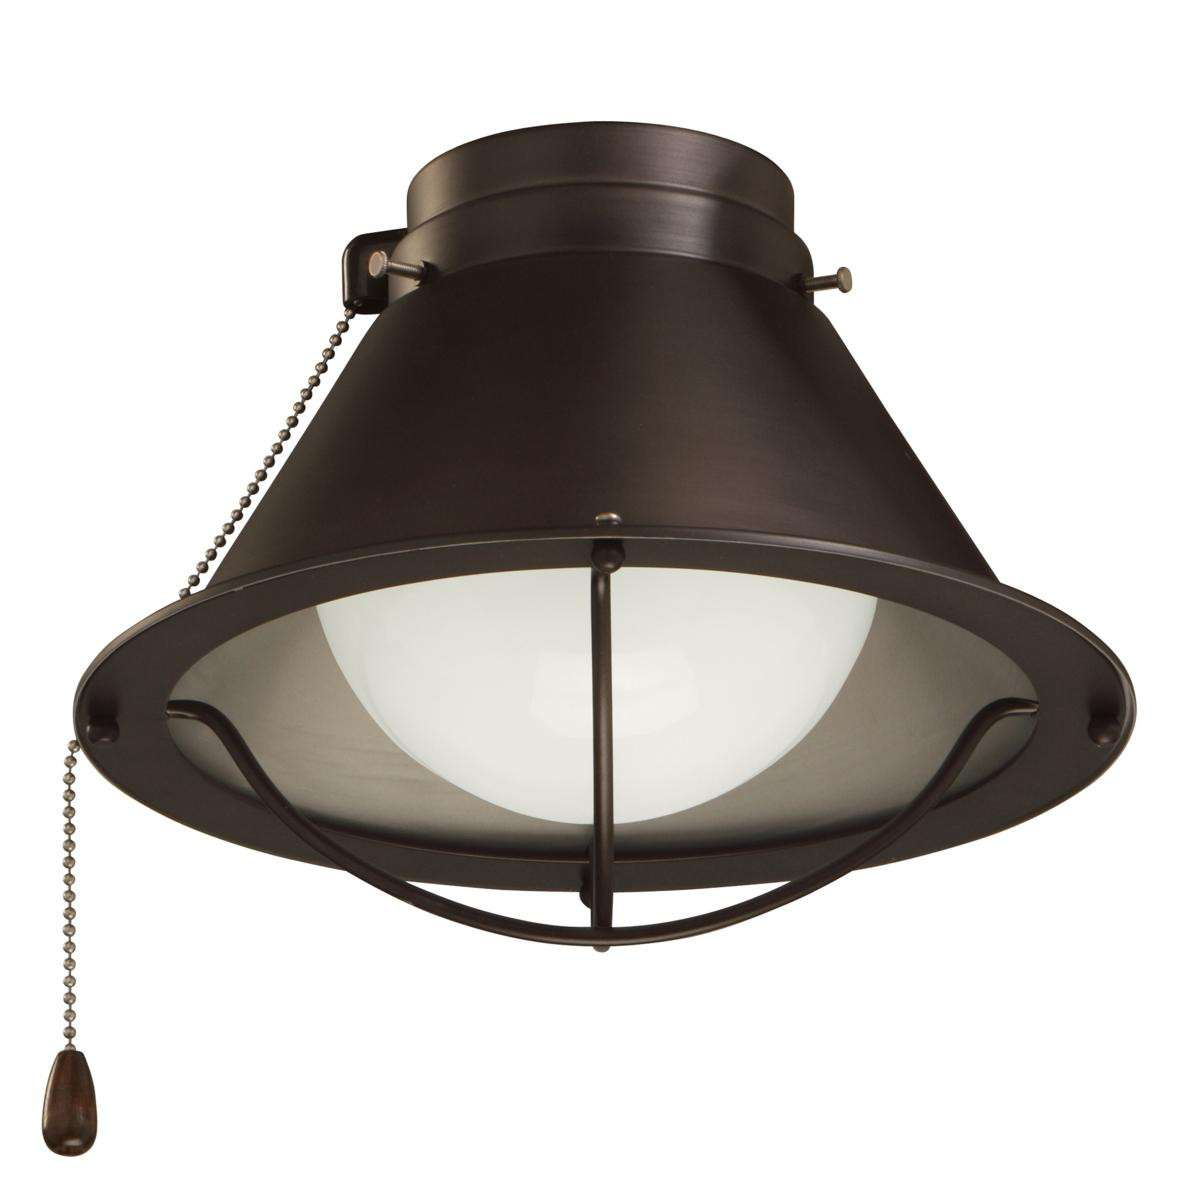 LK46ORB Single Globe Oil Rubbed Bronze Ceiling Fan LED Light Fixture